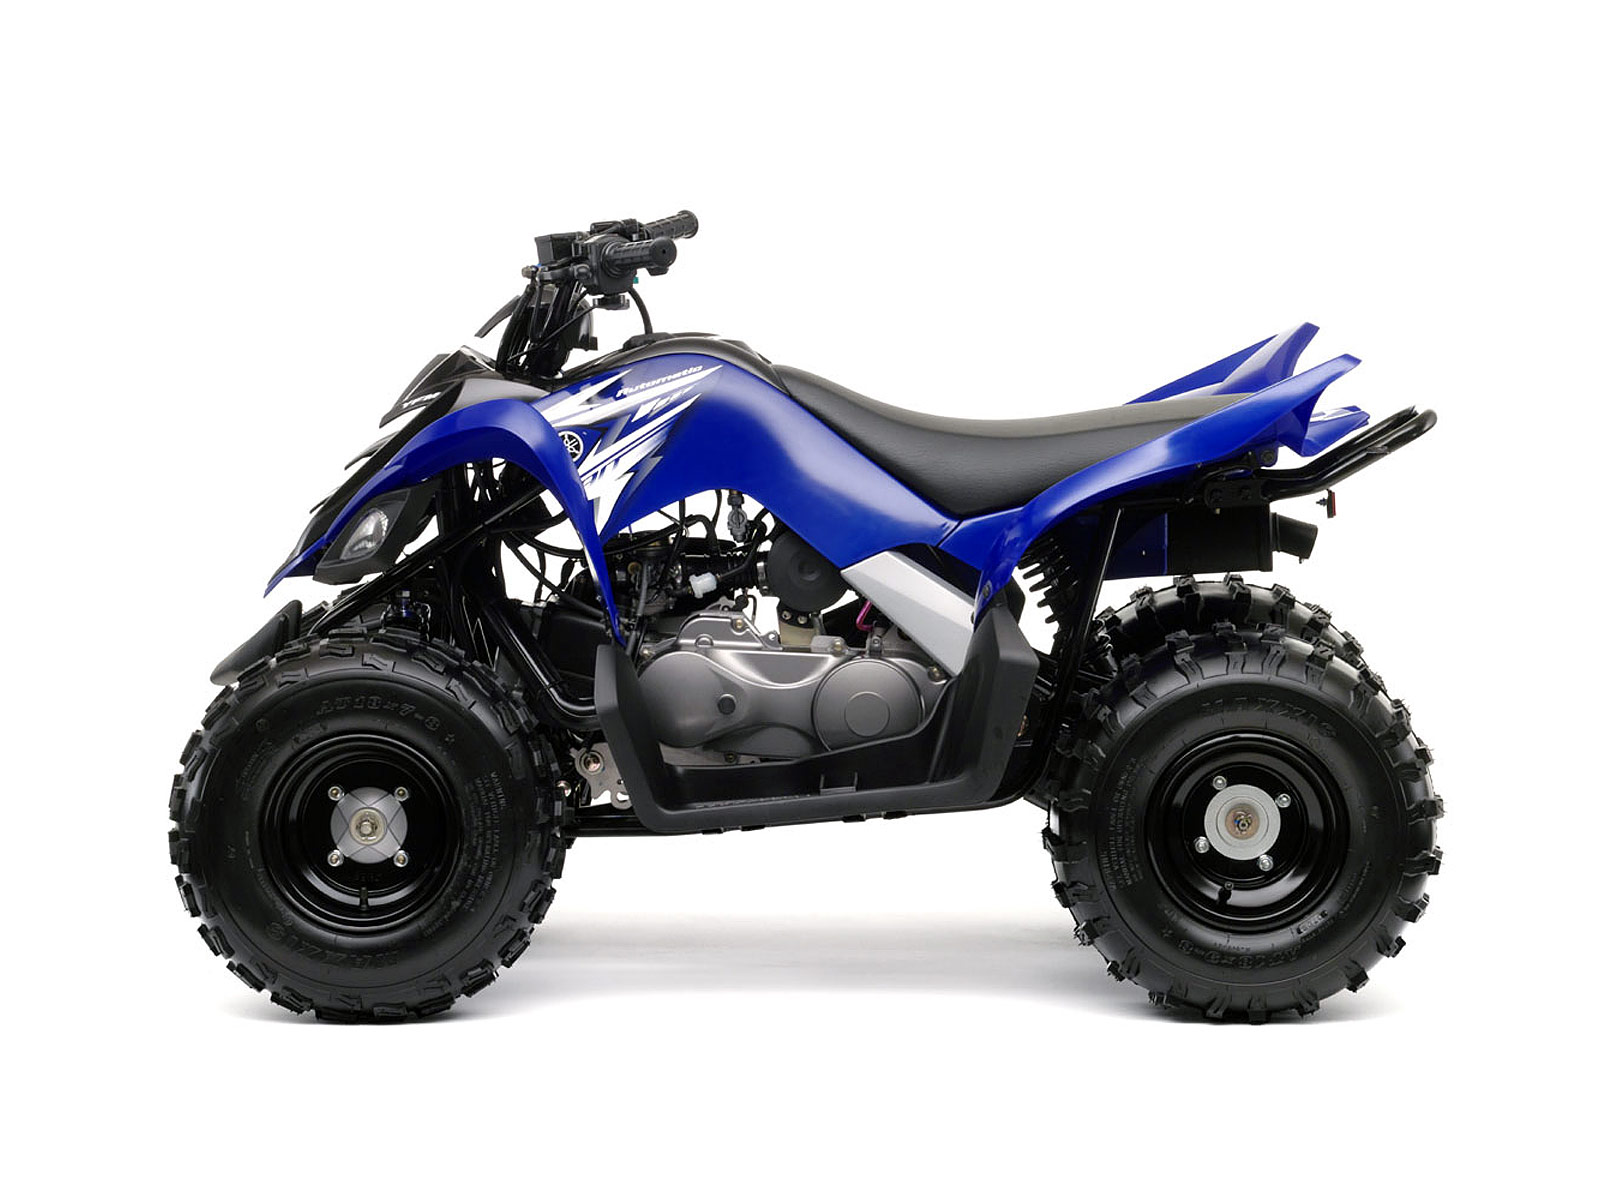 2009 Yamaha Raptor 90 Reviews, Prices, and Specs